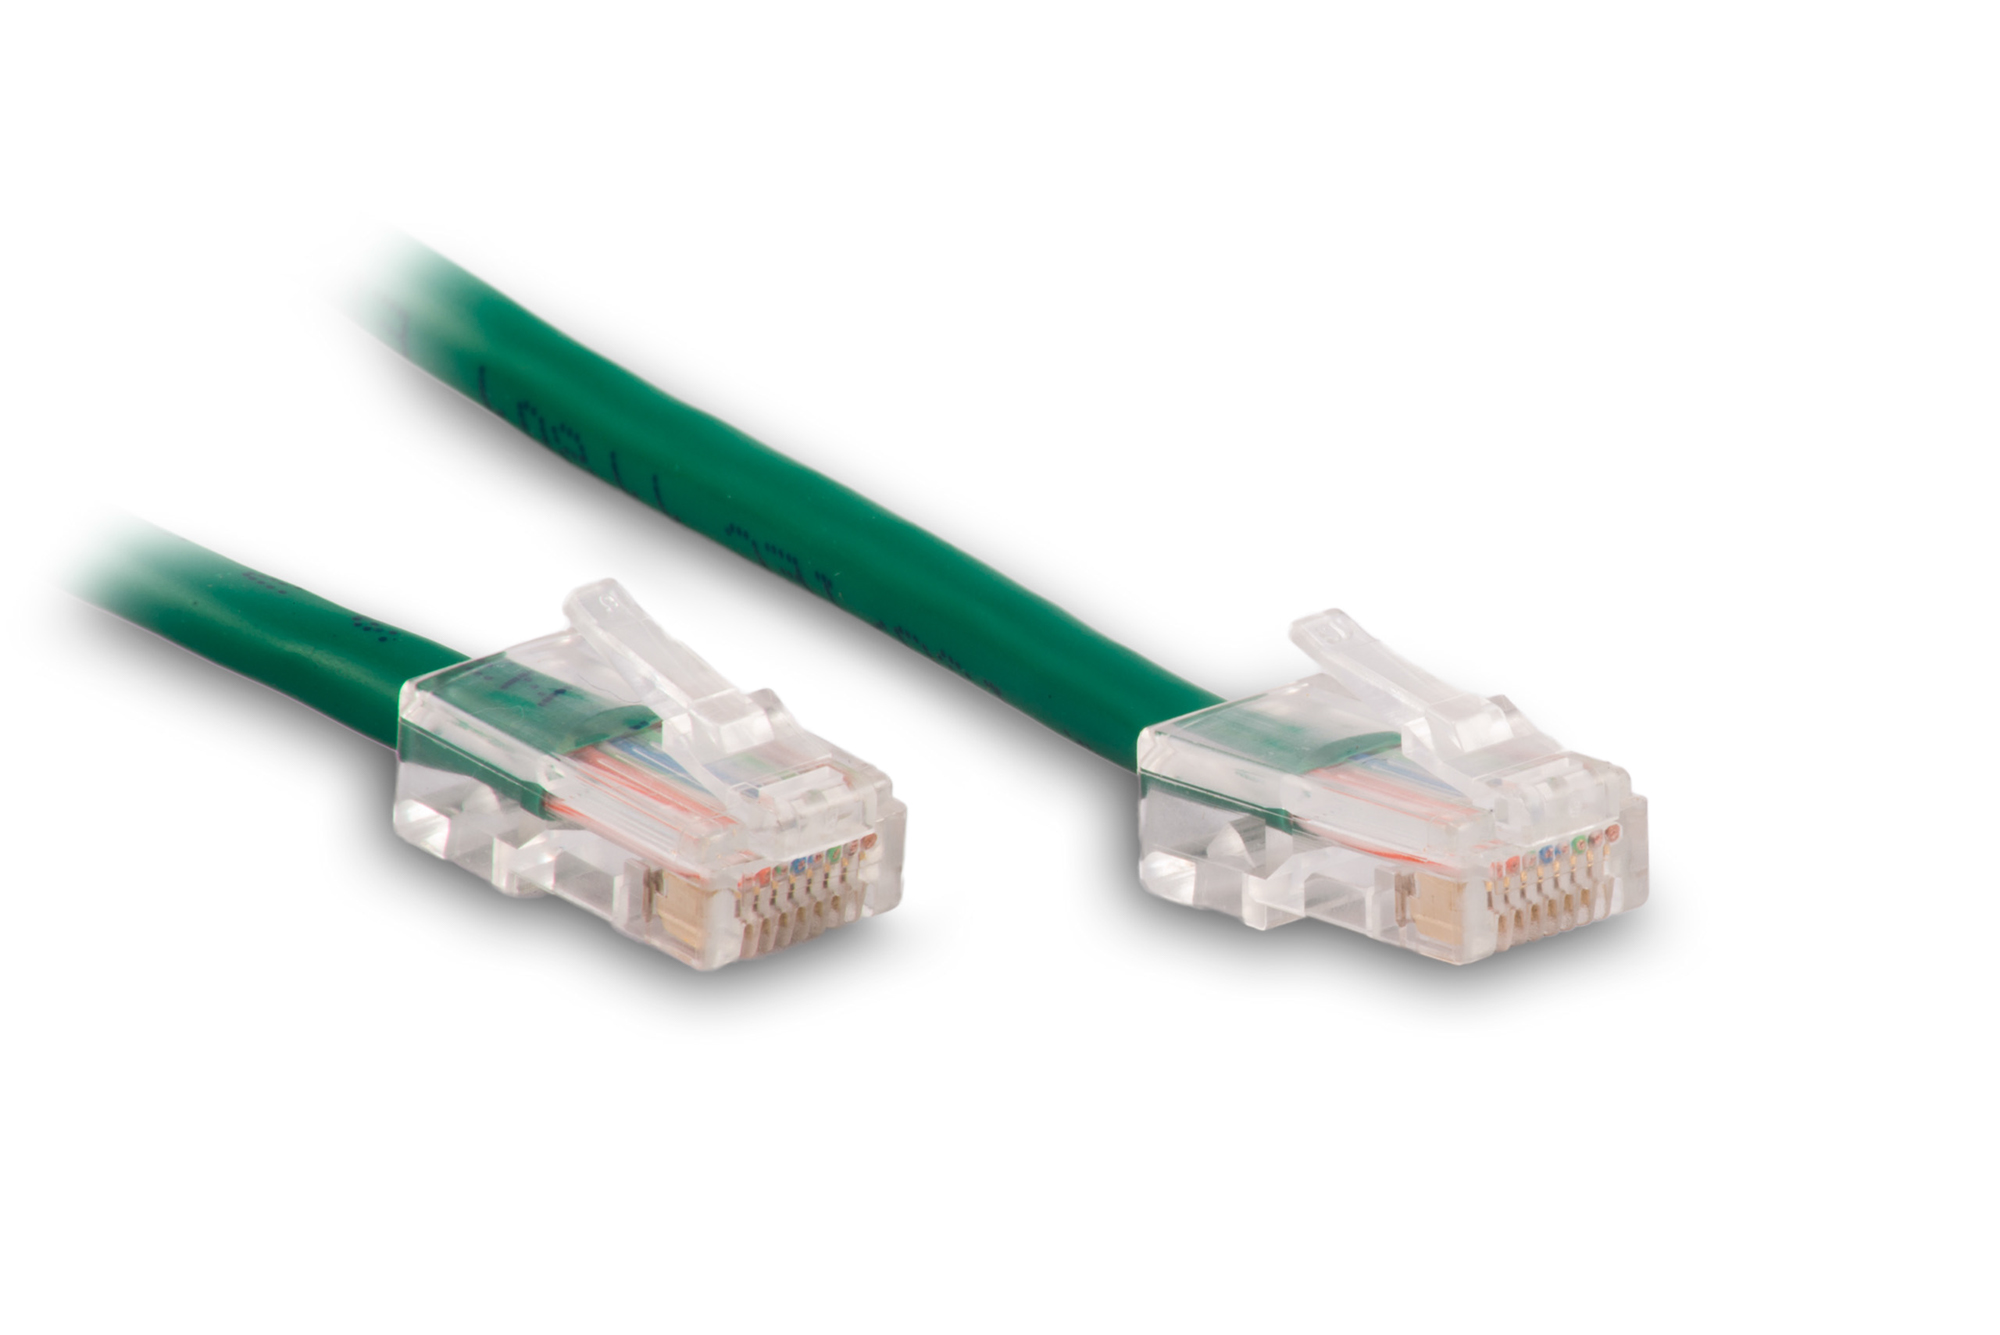 0.5FT Green Cat5e 350MHz RJ45 Network Patch Cable